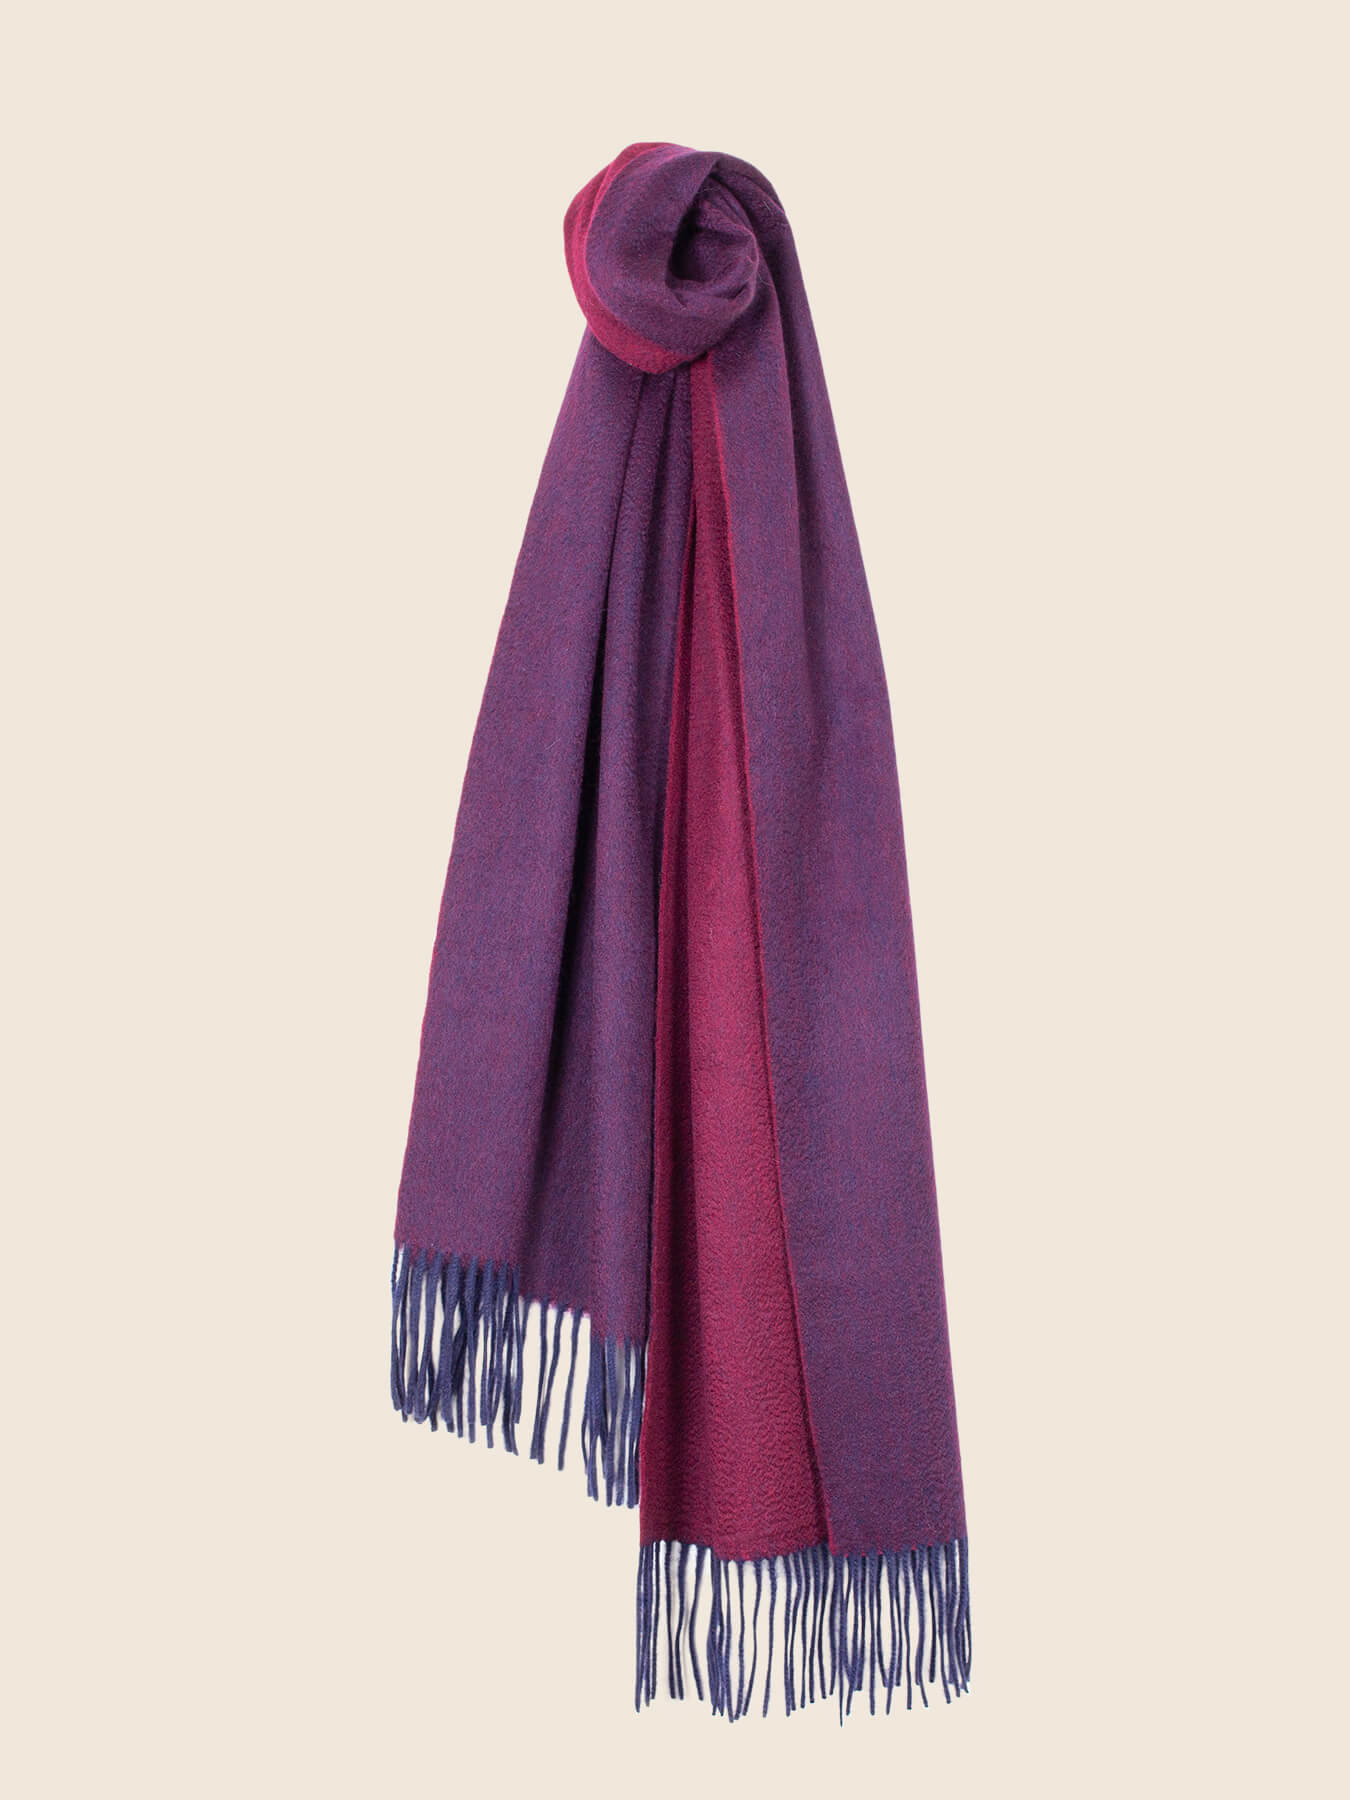 Two-Tone Reversible Cashmere Shawl Mulberry 1